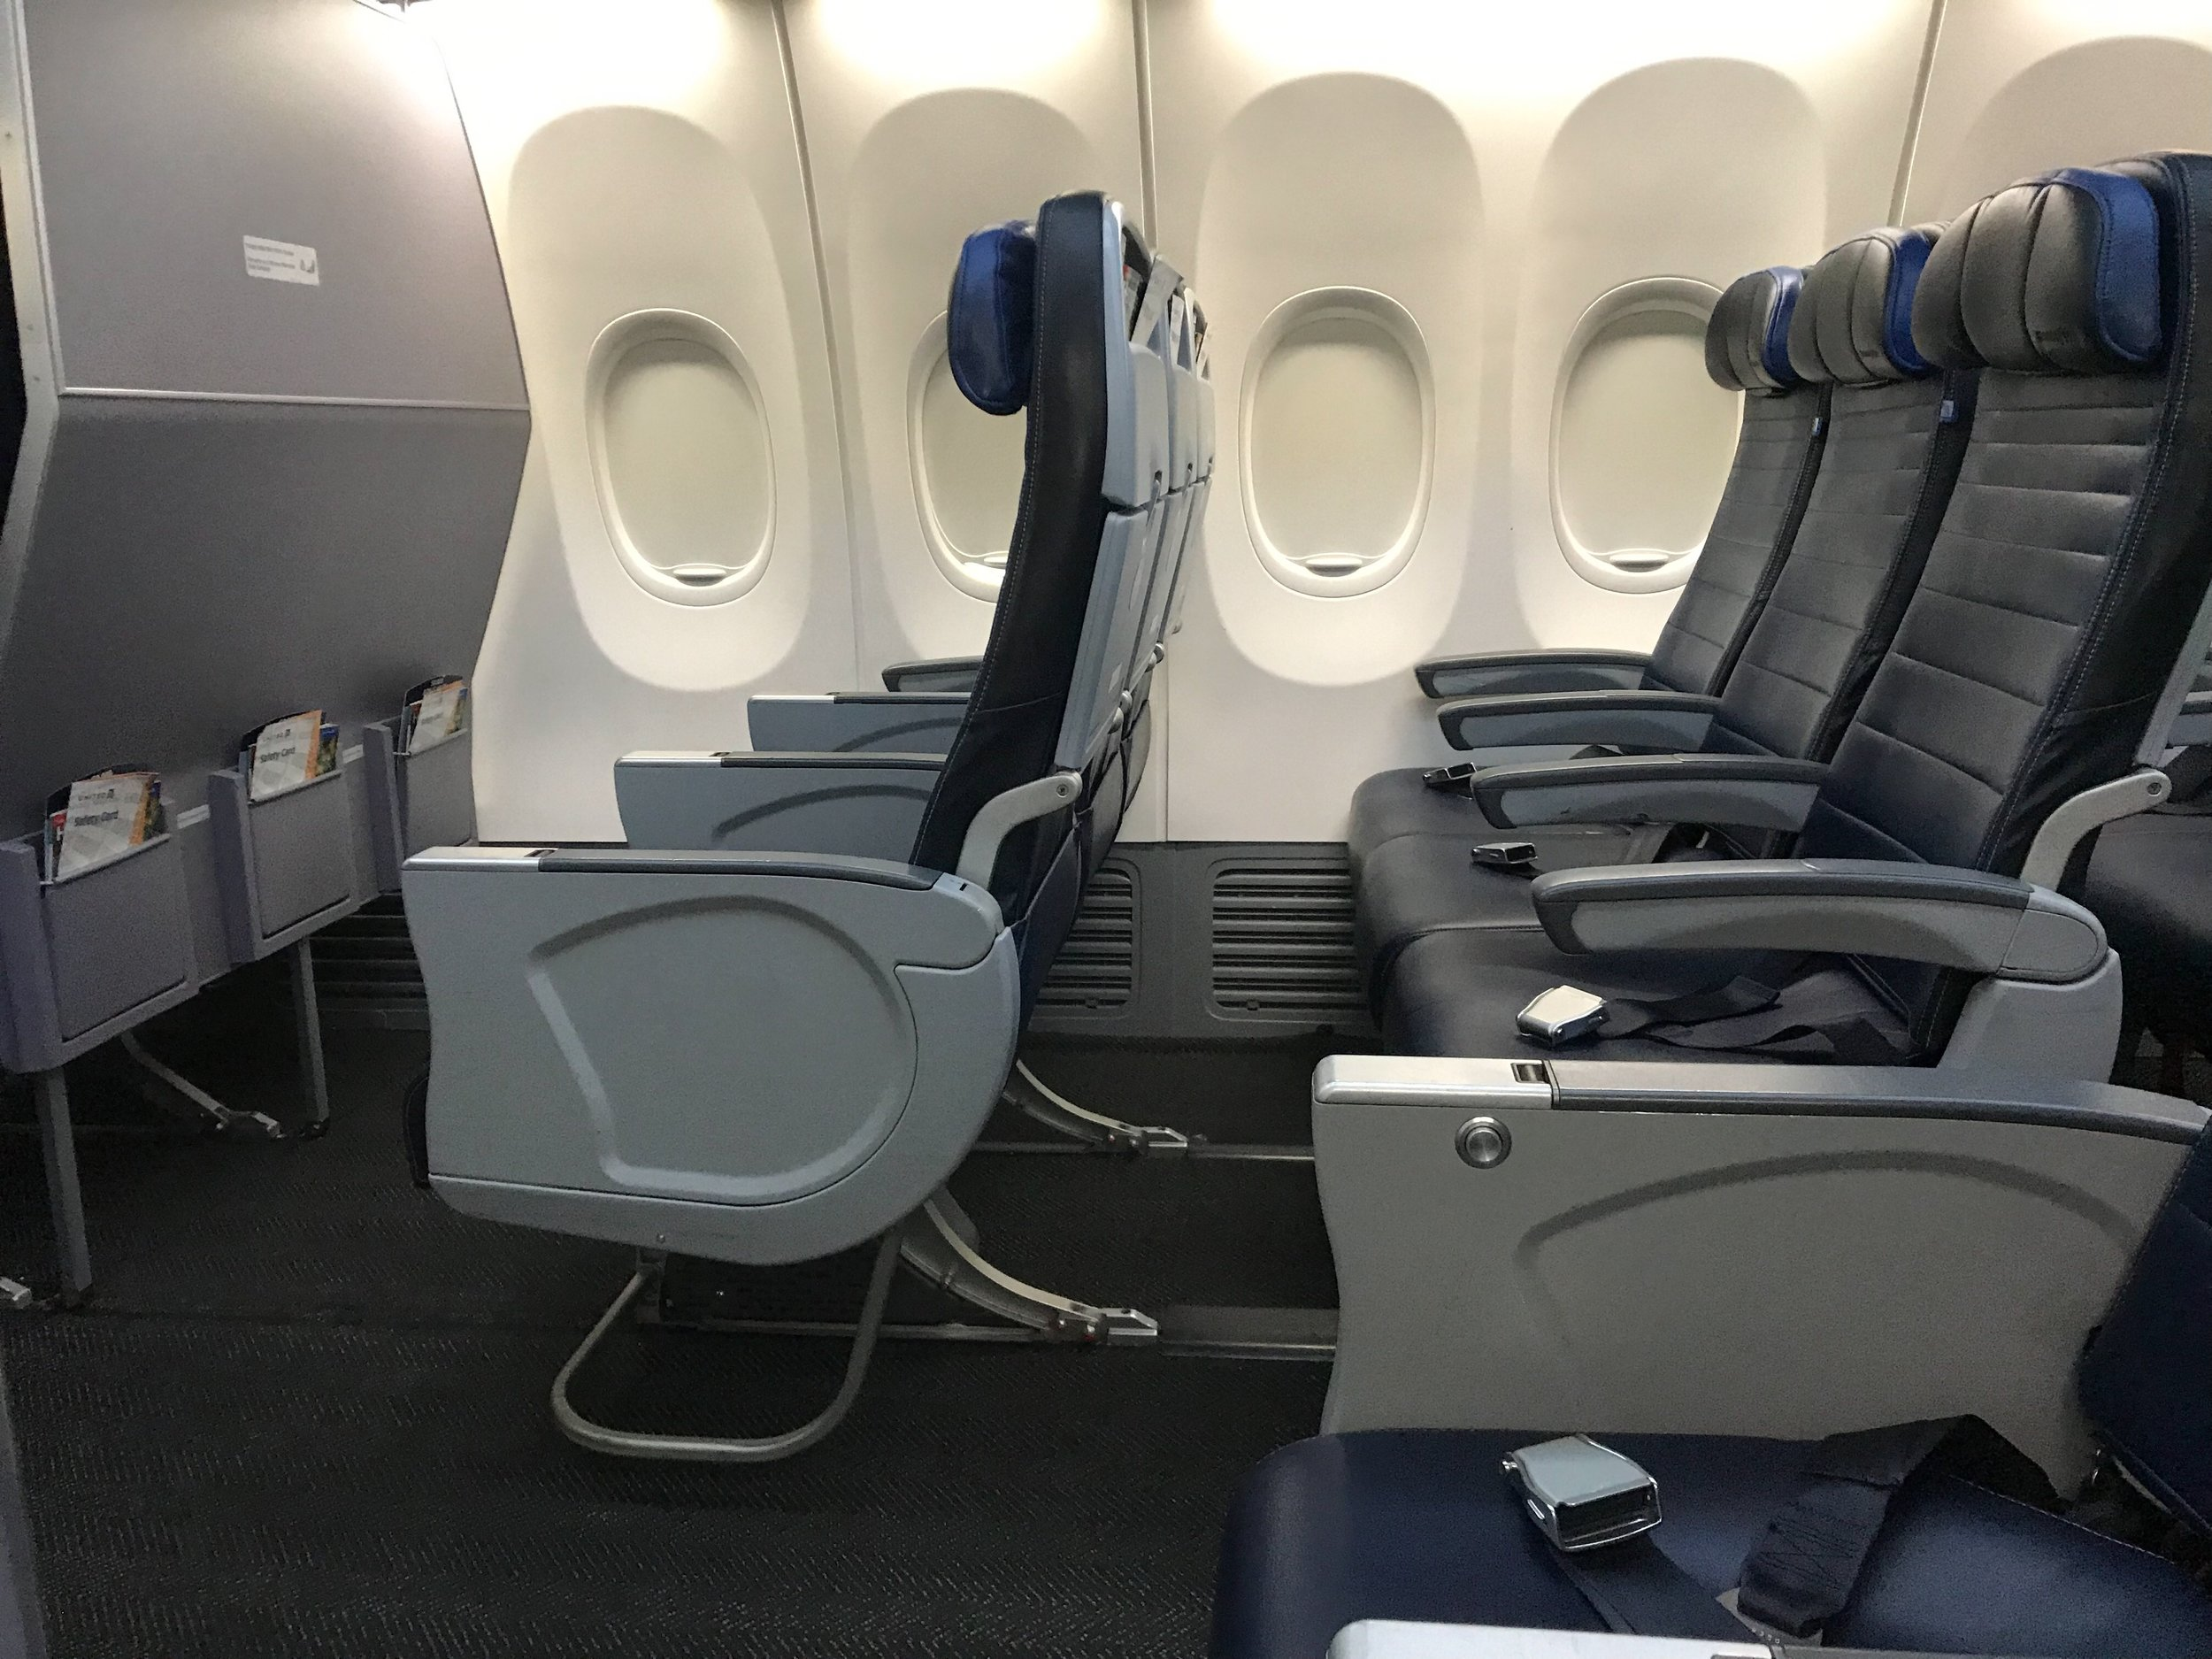 Seats in Row 7 have under-seat stowage.